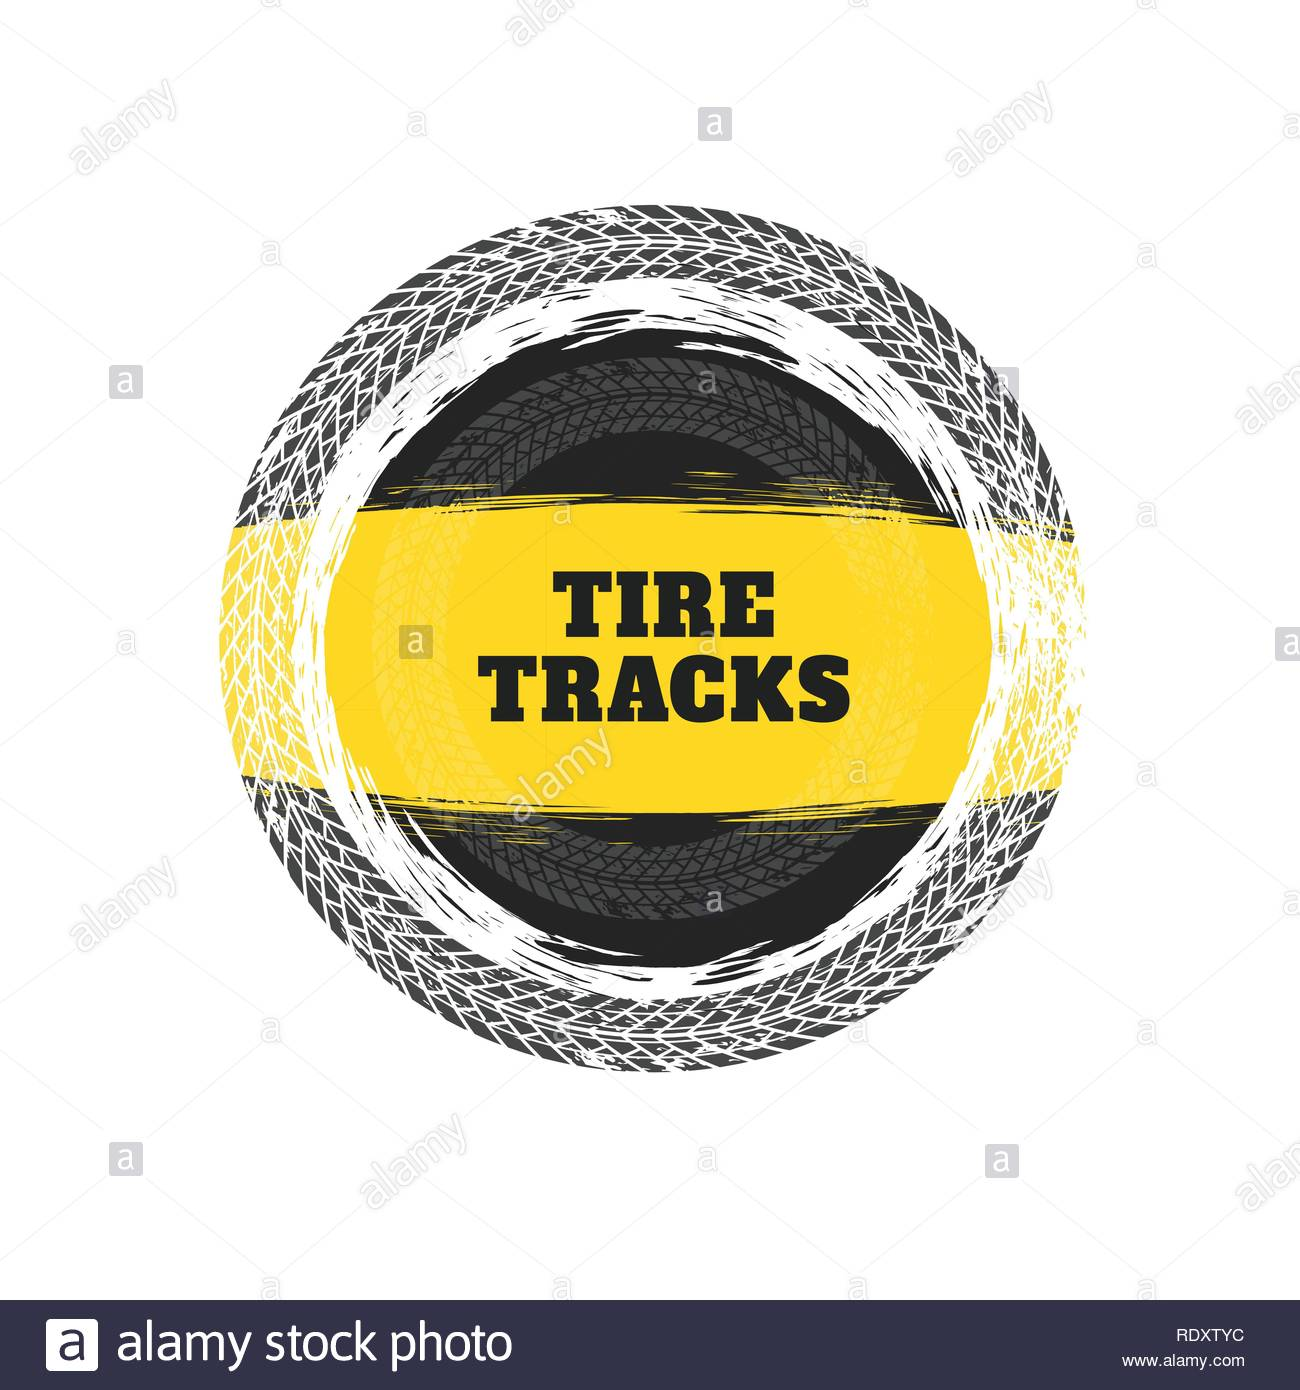 tire tracks circular frame background - Stock Image